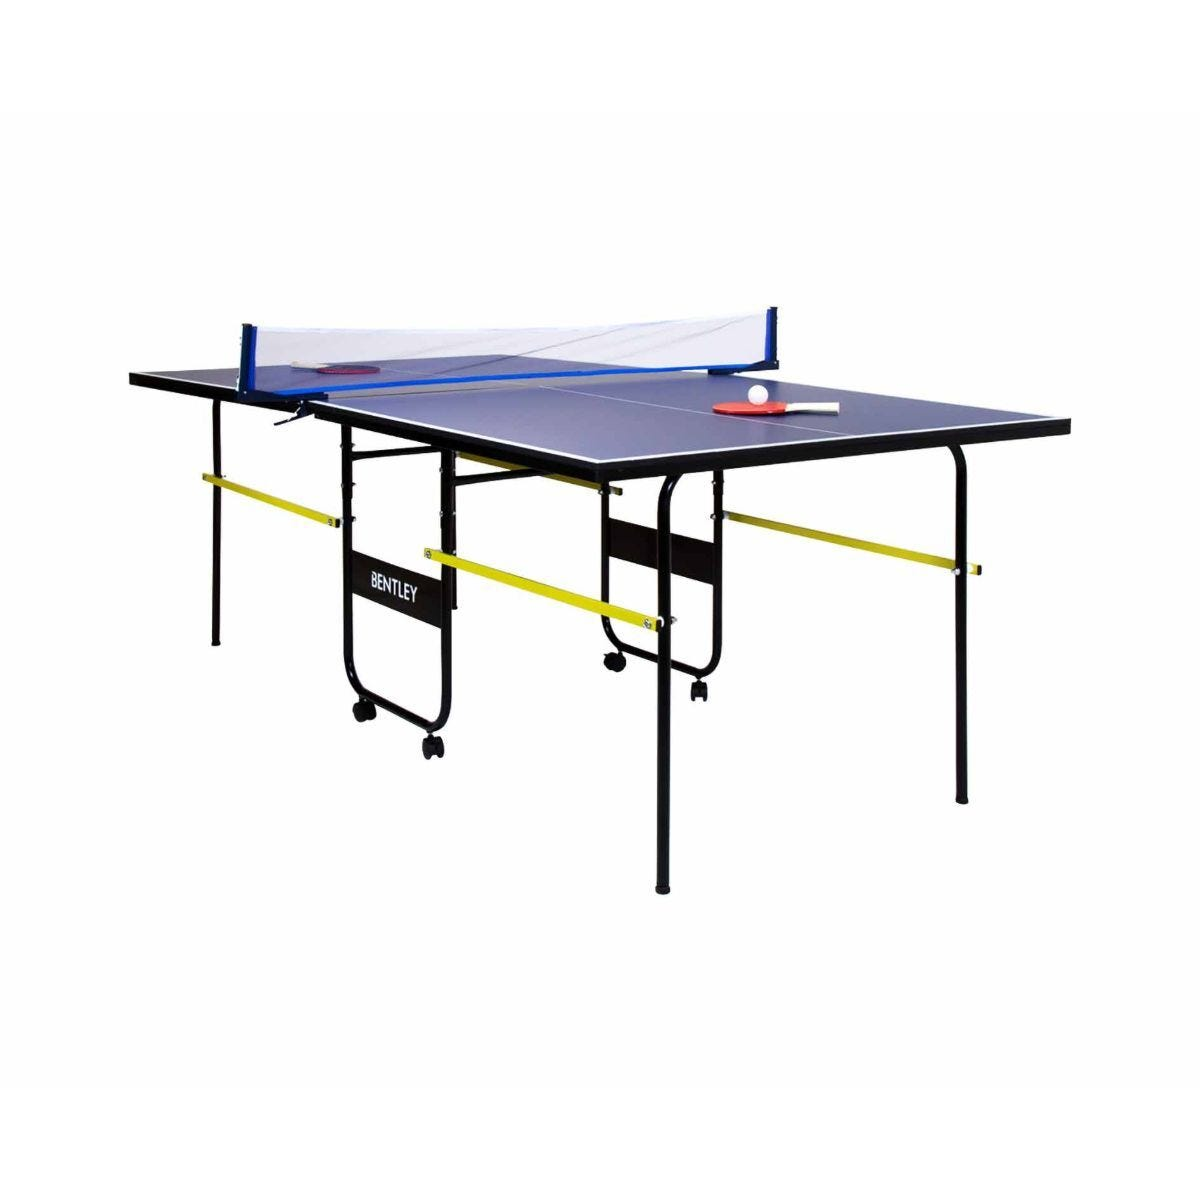 Charles Bentley Folding Table Tennis Table 6ft 9